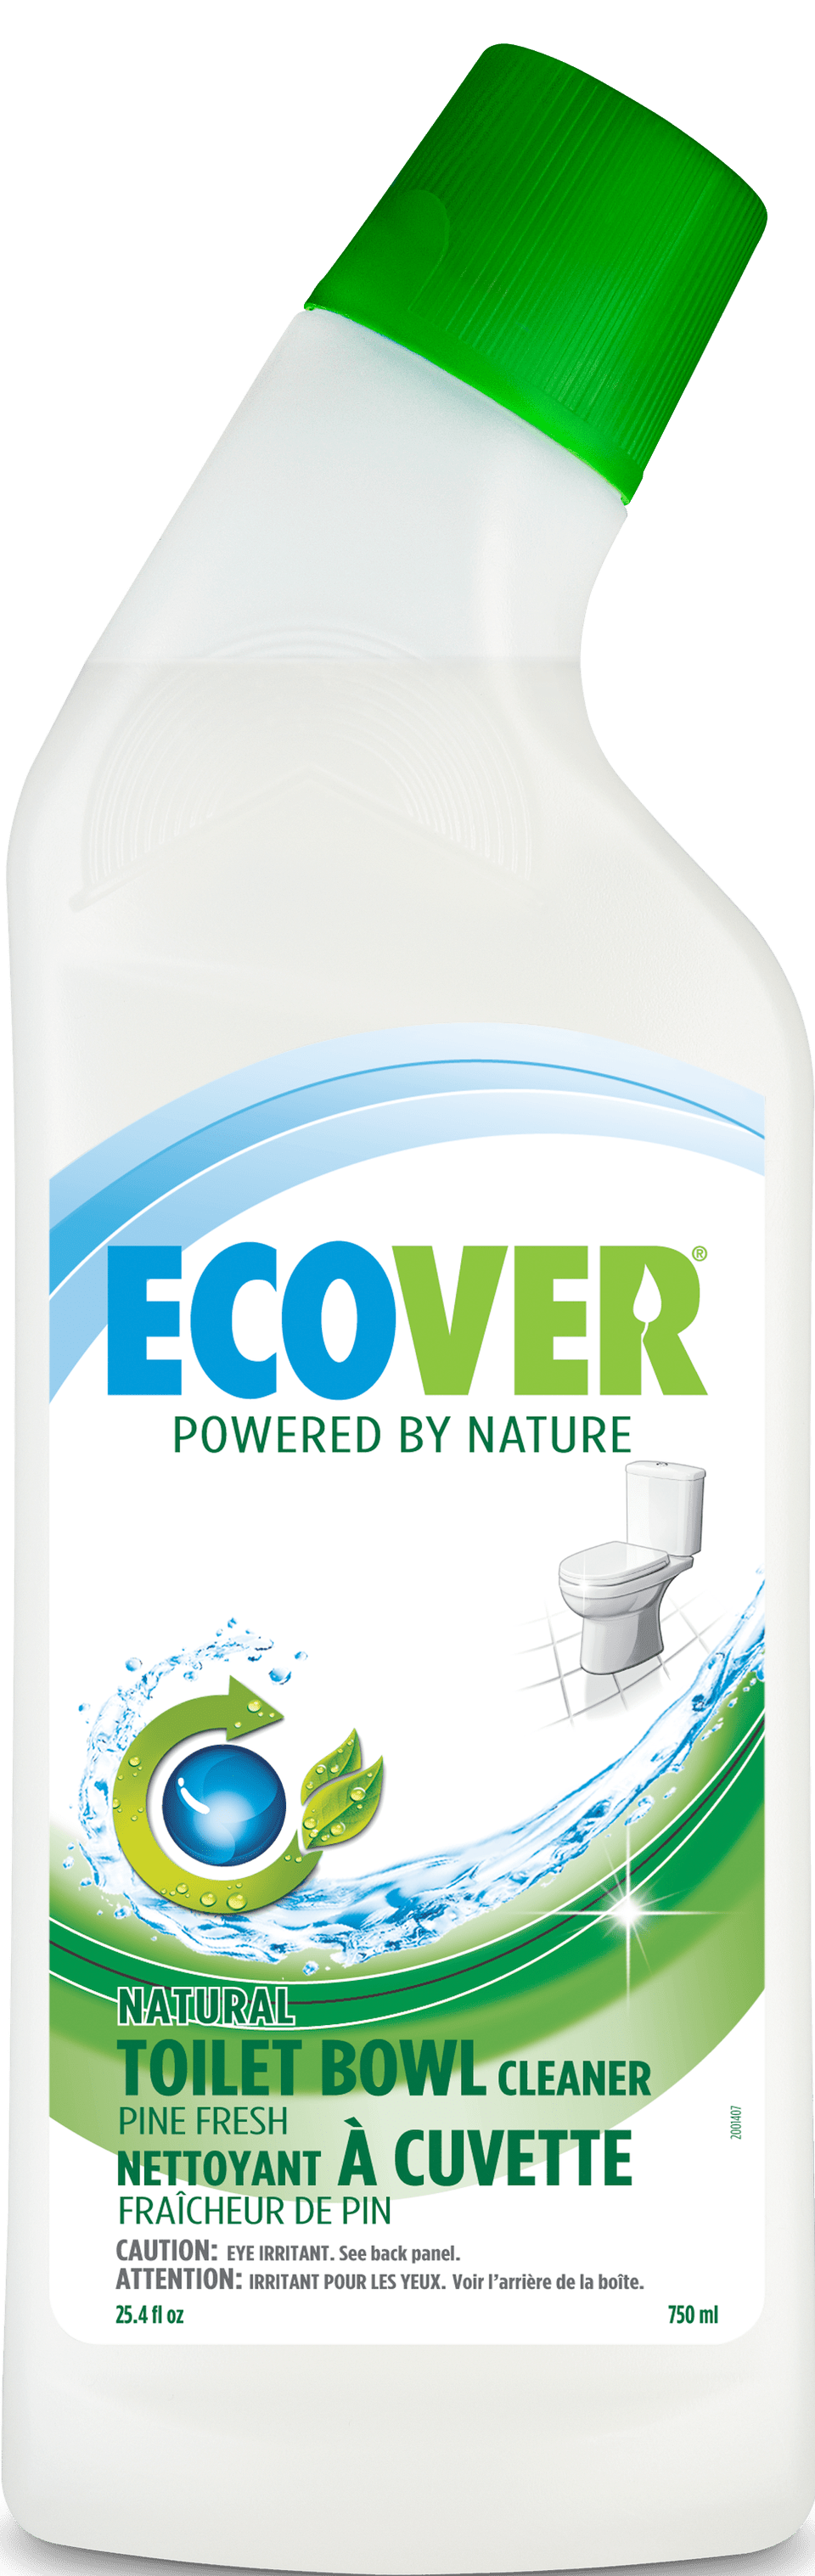 Best 7 Green Toilet Bowl Cleaners